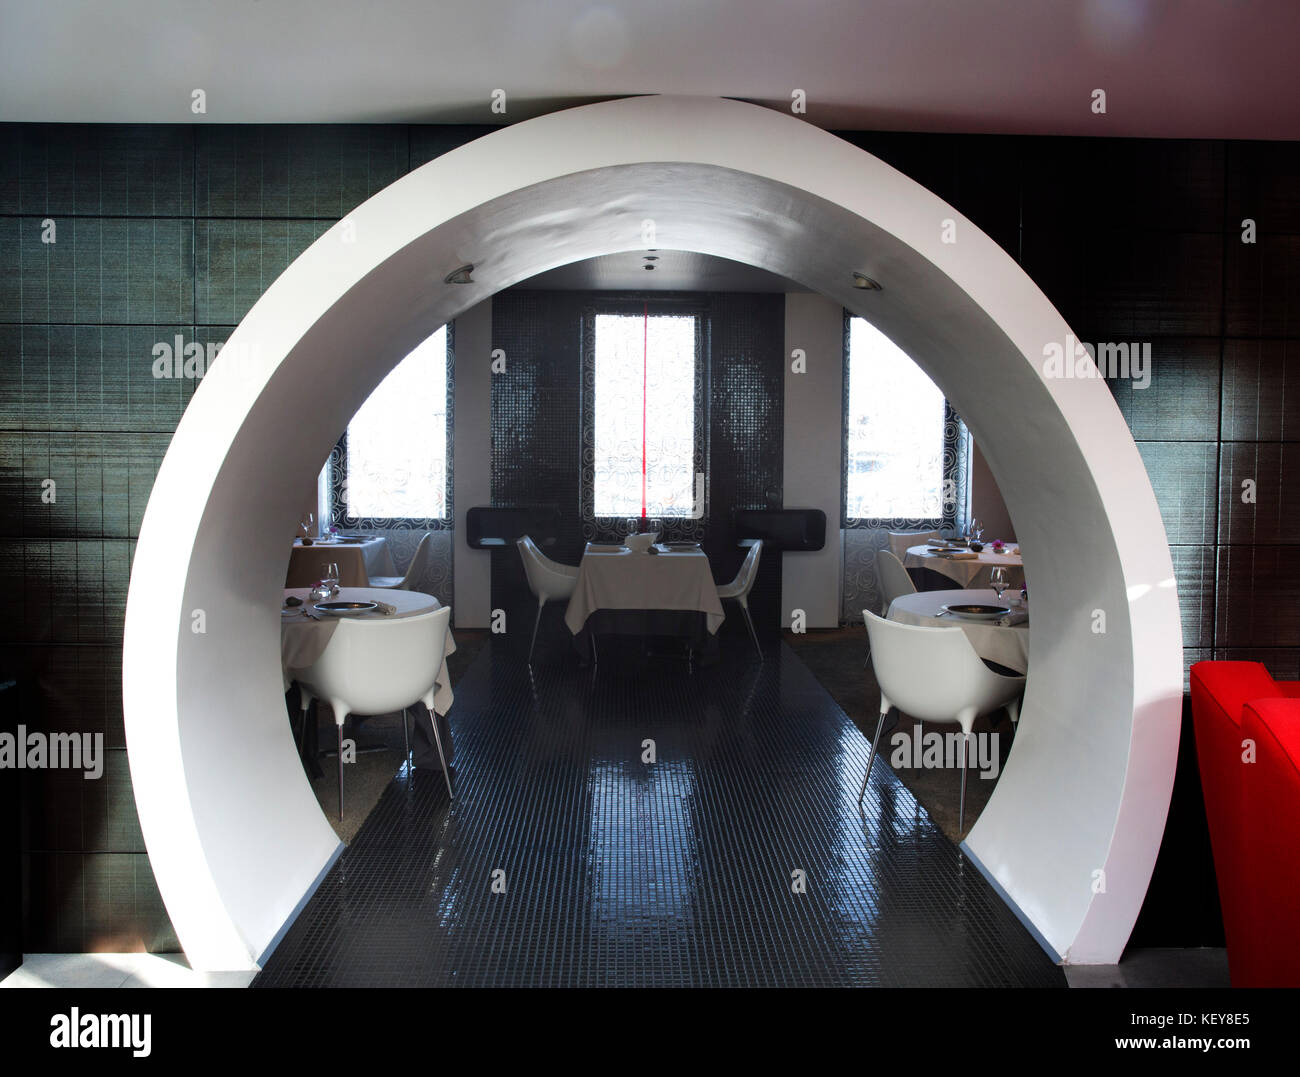 restaurant la marine stock photos restaurant la marine stock images alamy. Black Bedroom Furniture Sets. Home Design Ideas